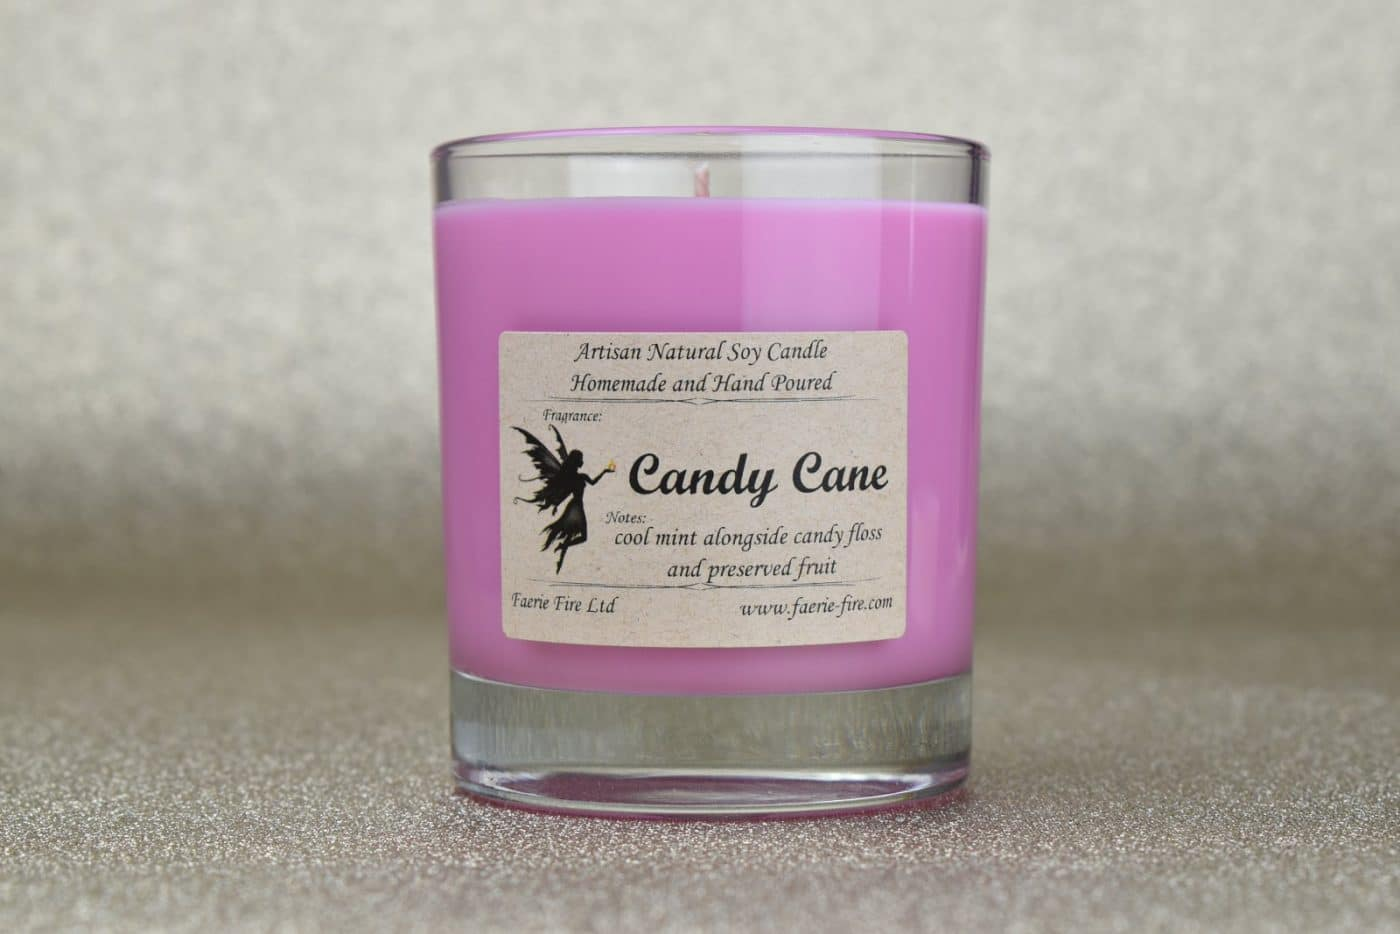 Festive mint candy cane soy way jar candle. Pink in colour against a gold background